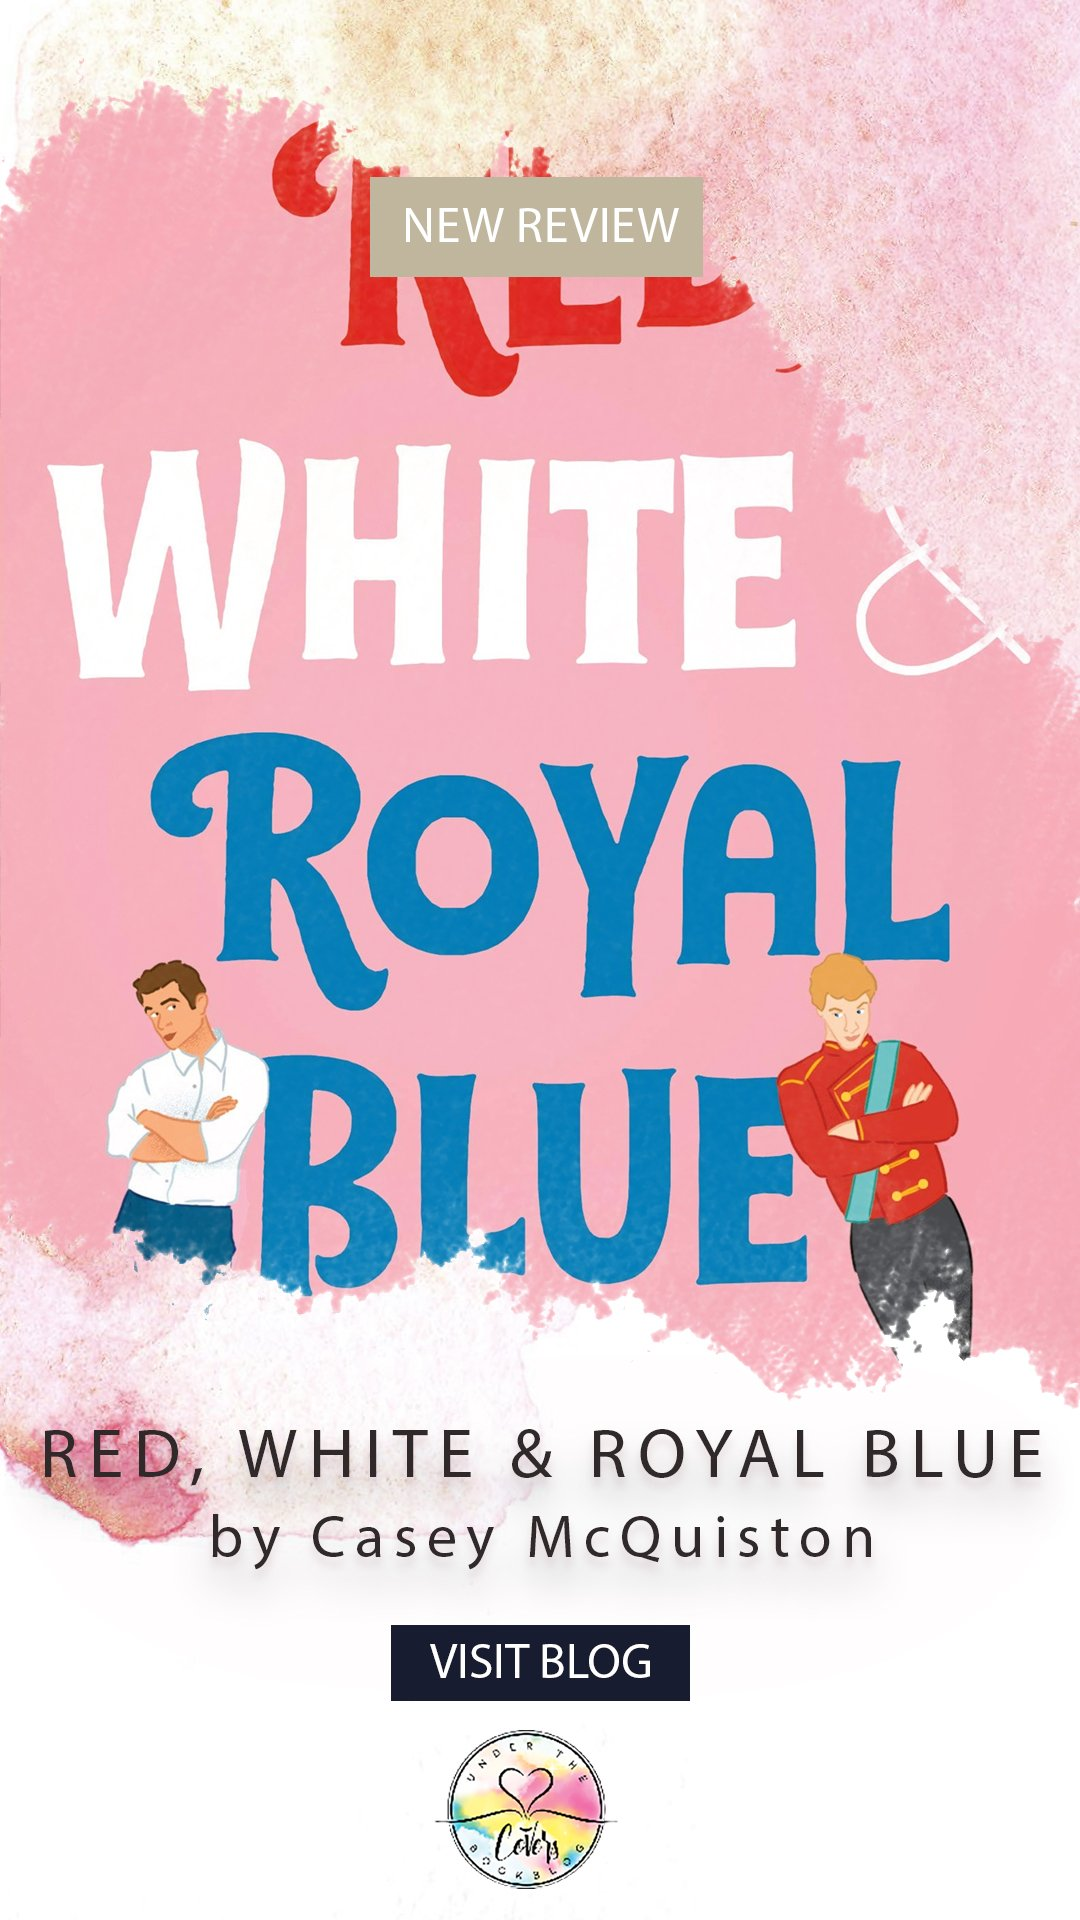 ARC Review: Red, White & Royal Blue by Casey McQuiston